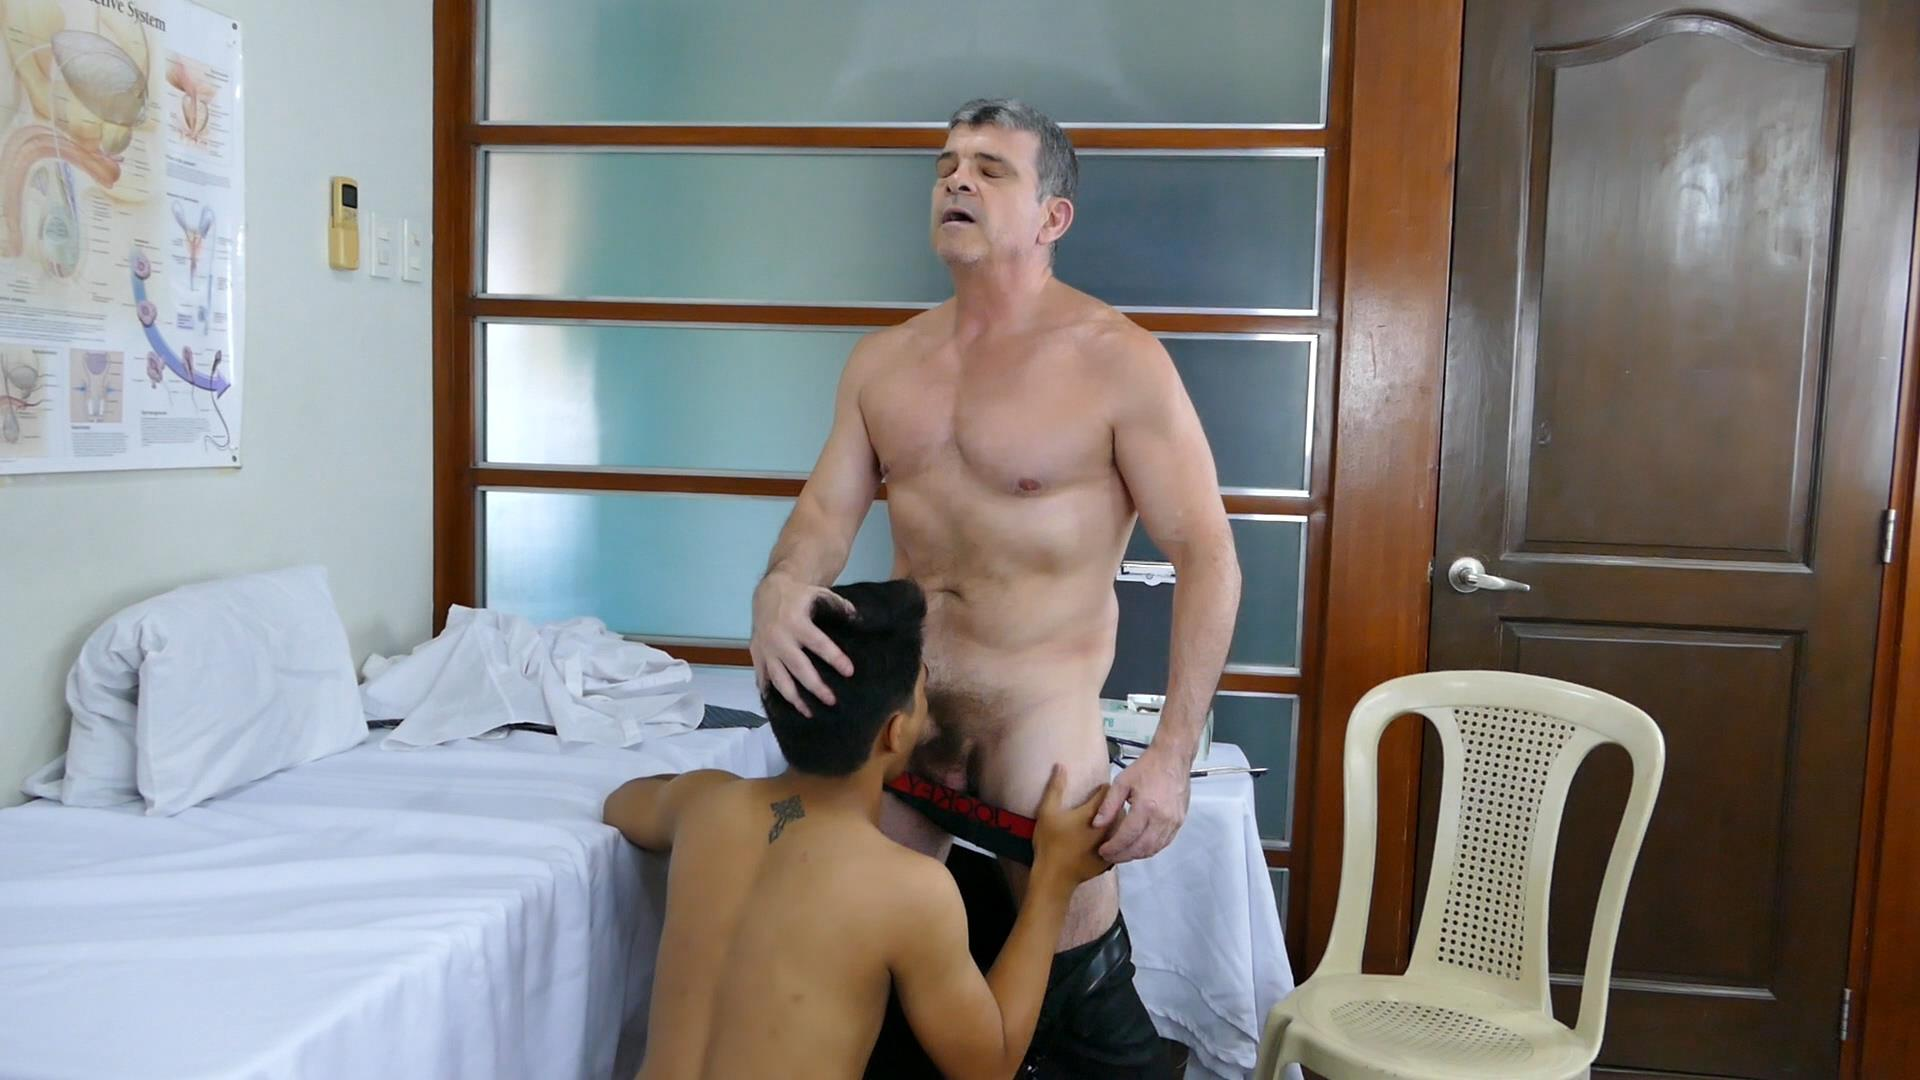 Daddys-Asians-Twink-Gets-Bareback-Fucked-By-Older-Man-15 Horny Asian Boy Takes A Hairy Daddy Dick Raw Up The Ass